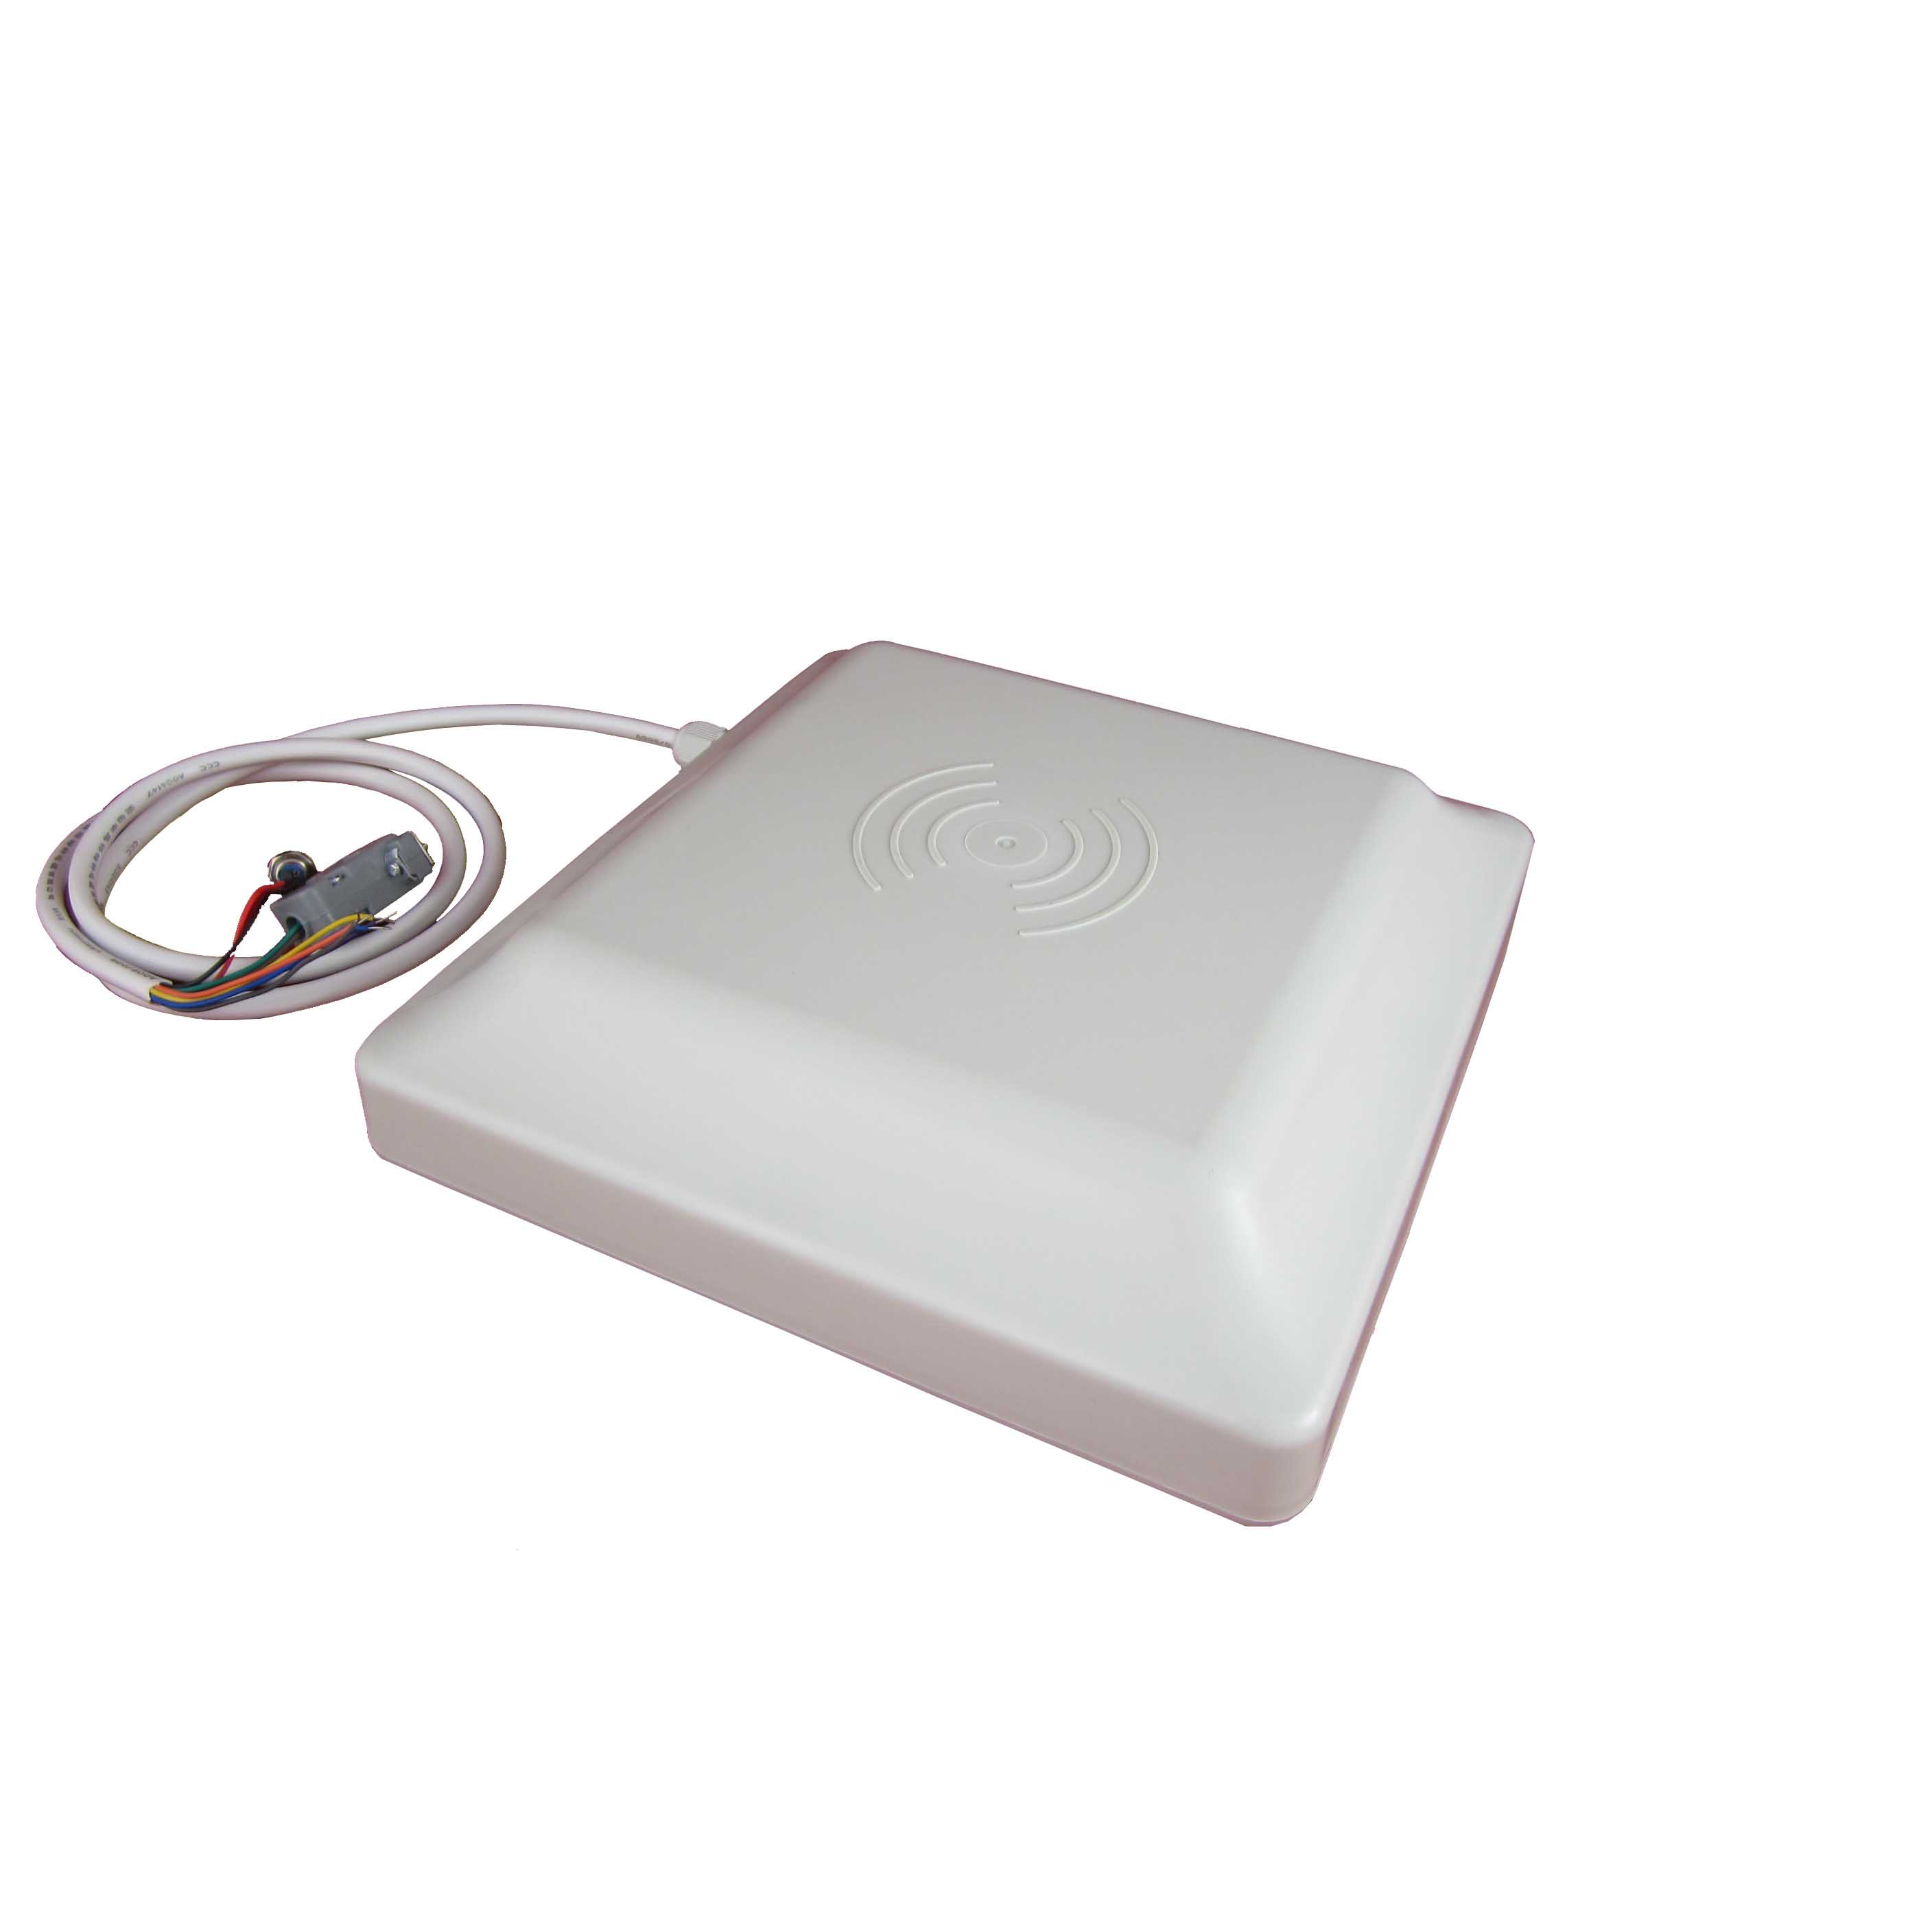 ISM 902-928MHZ RFID UHF Reader Writer wg26/rs232 with SDK buy one get 20piece ISO18000-6C Sticker rfid uhf reader writer 902 928mhz 5 meter free sdk and software for car packing system and warehouse